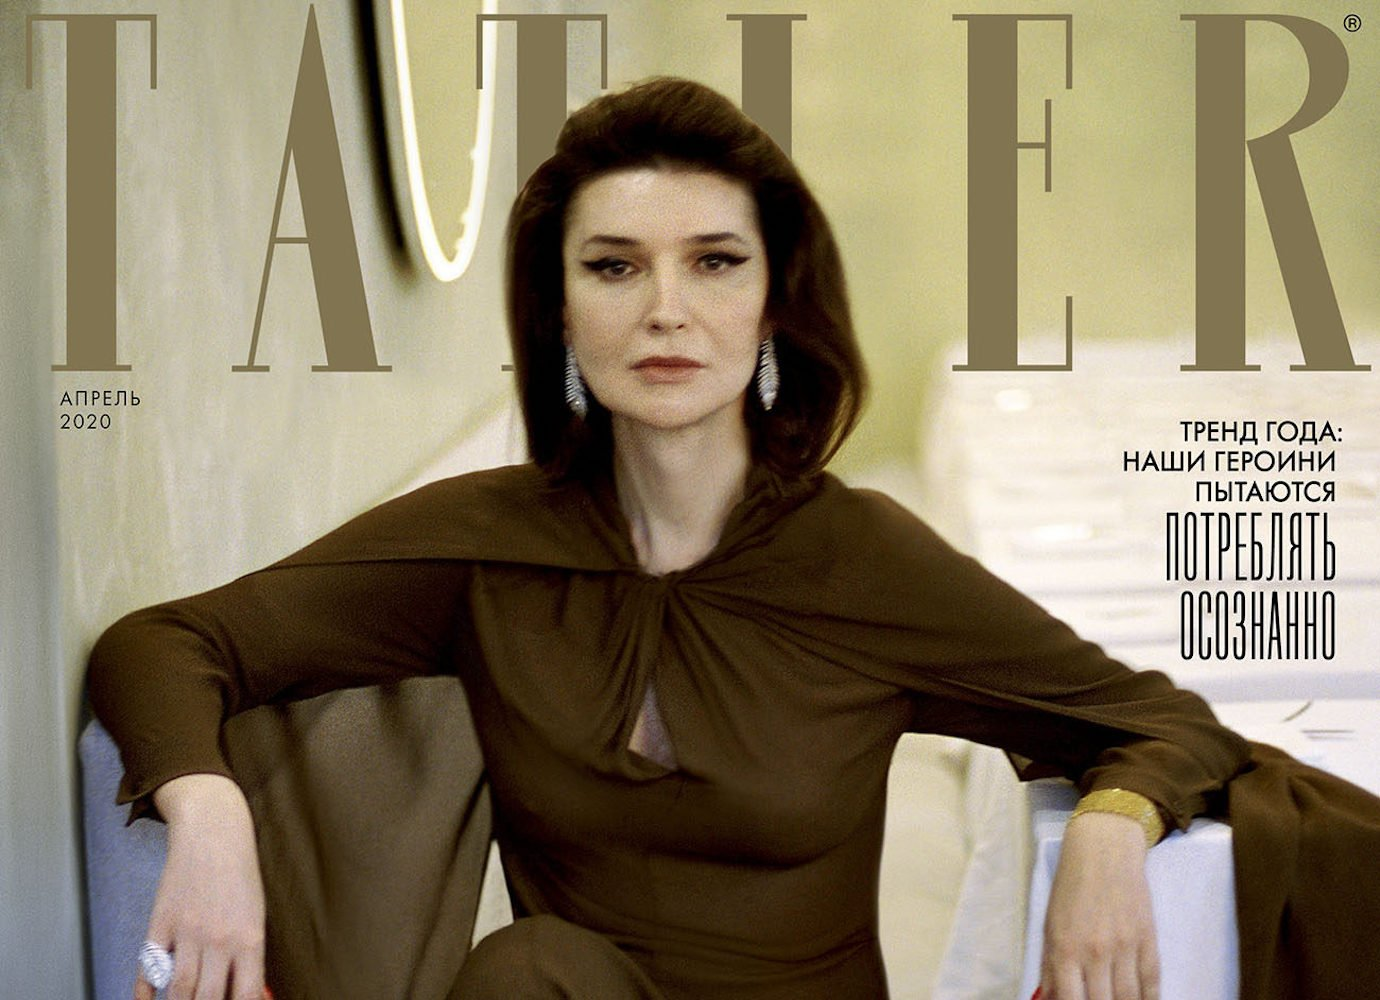 Tatler becomes first Russian glossy to feature trans cover star